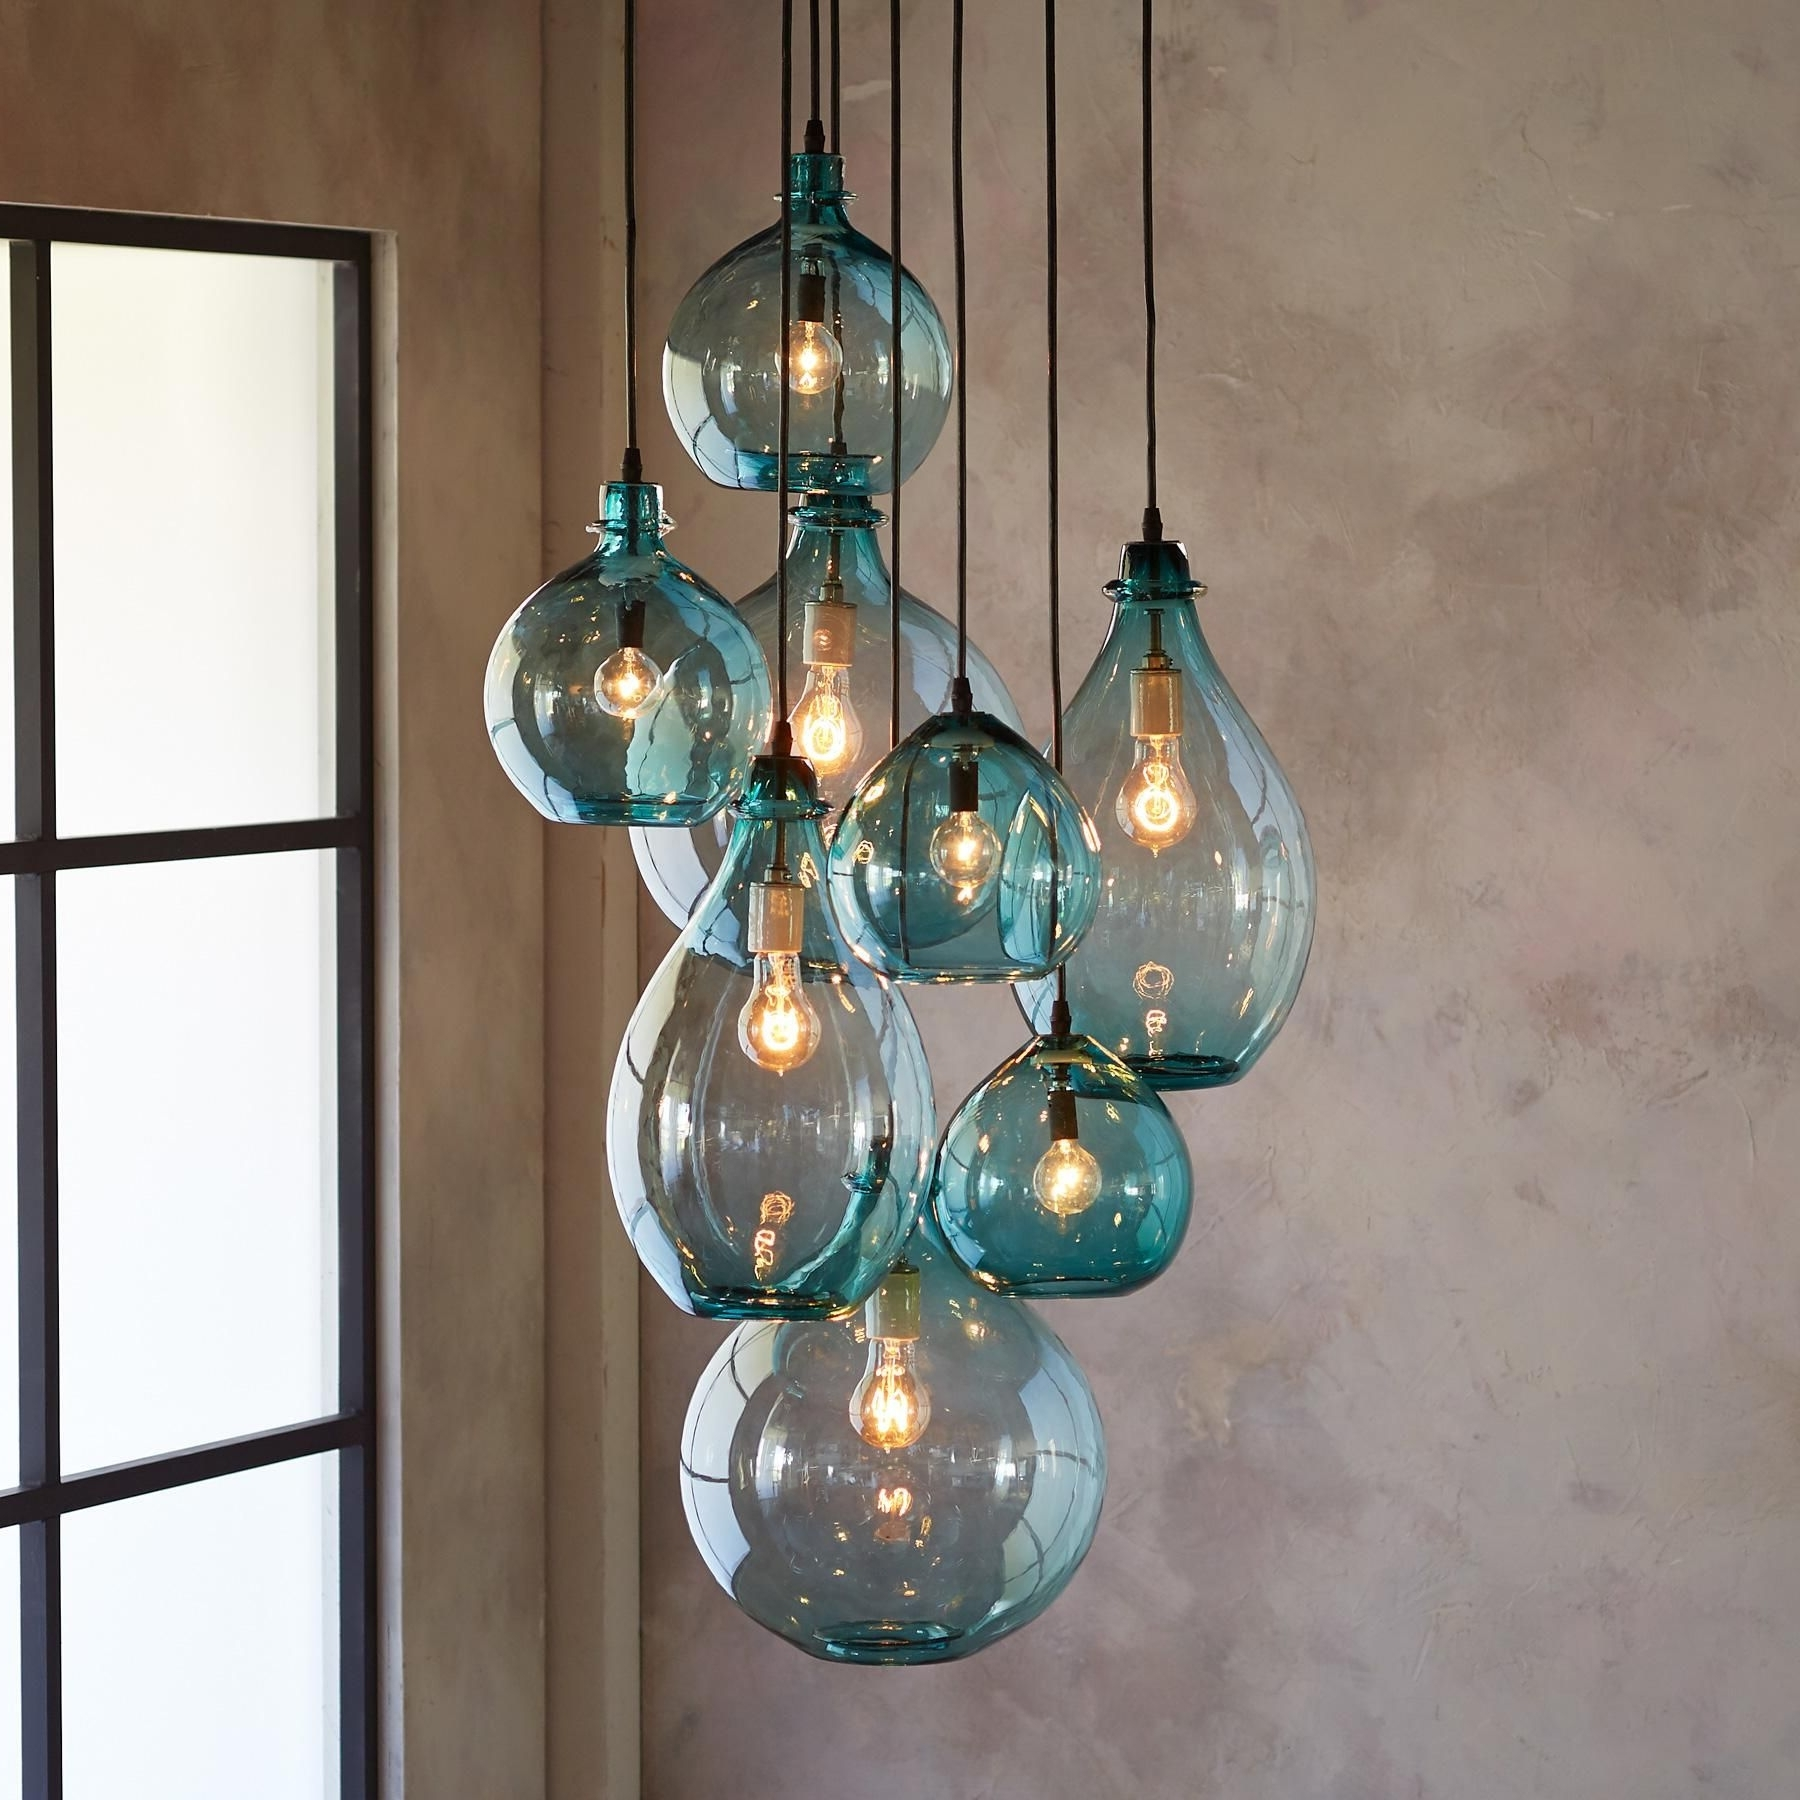 Salon Glass Pendant Canopy — Limpid Turquoise Drops Of Hand Blown Intended For Well Known Turquoise Chandelier Lights (View 9 of 20)